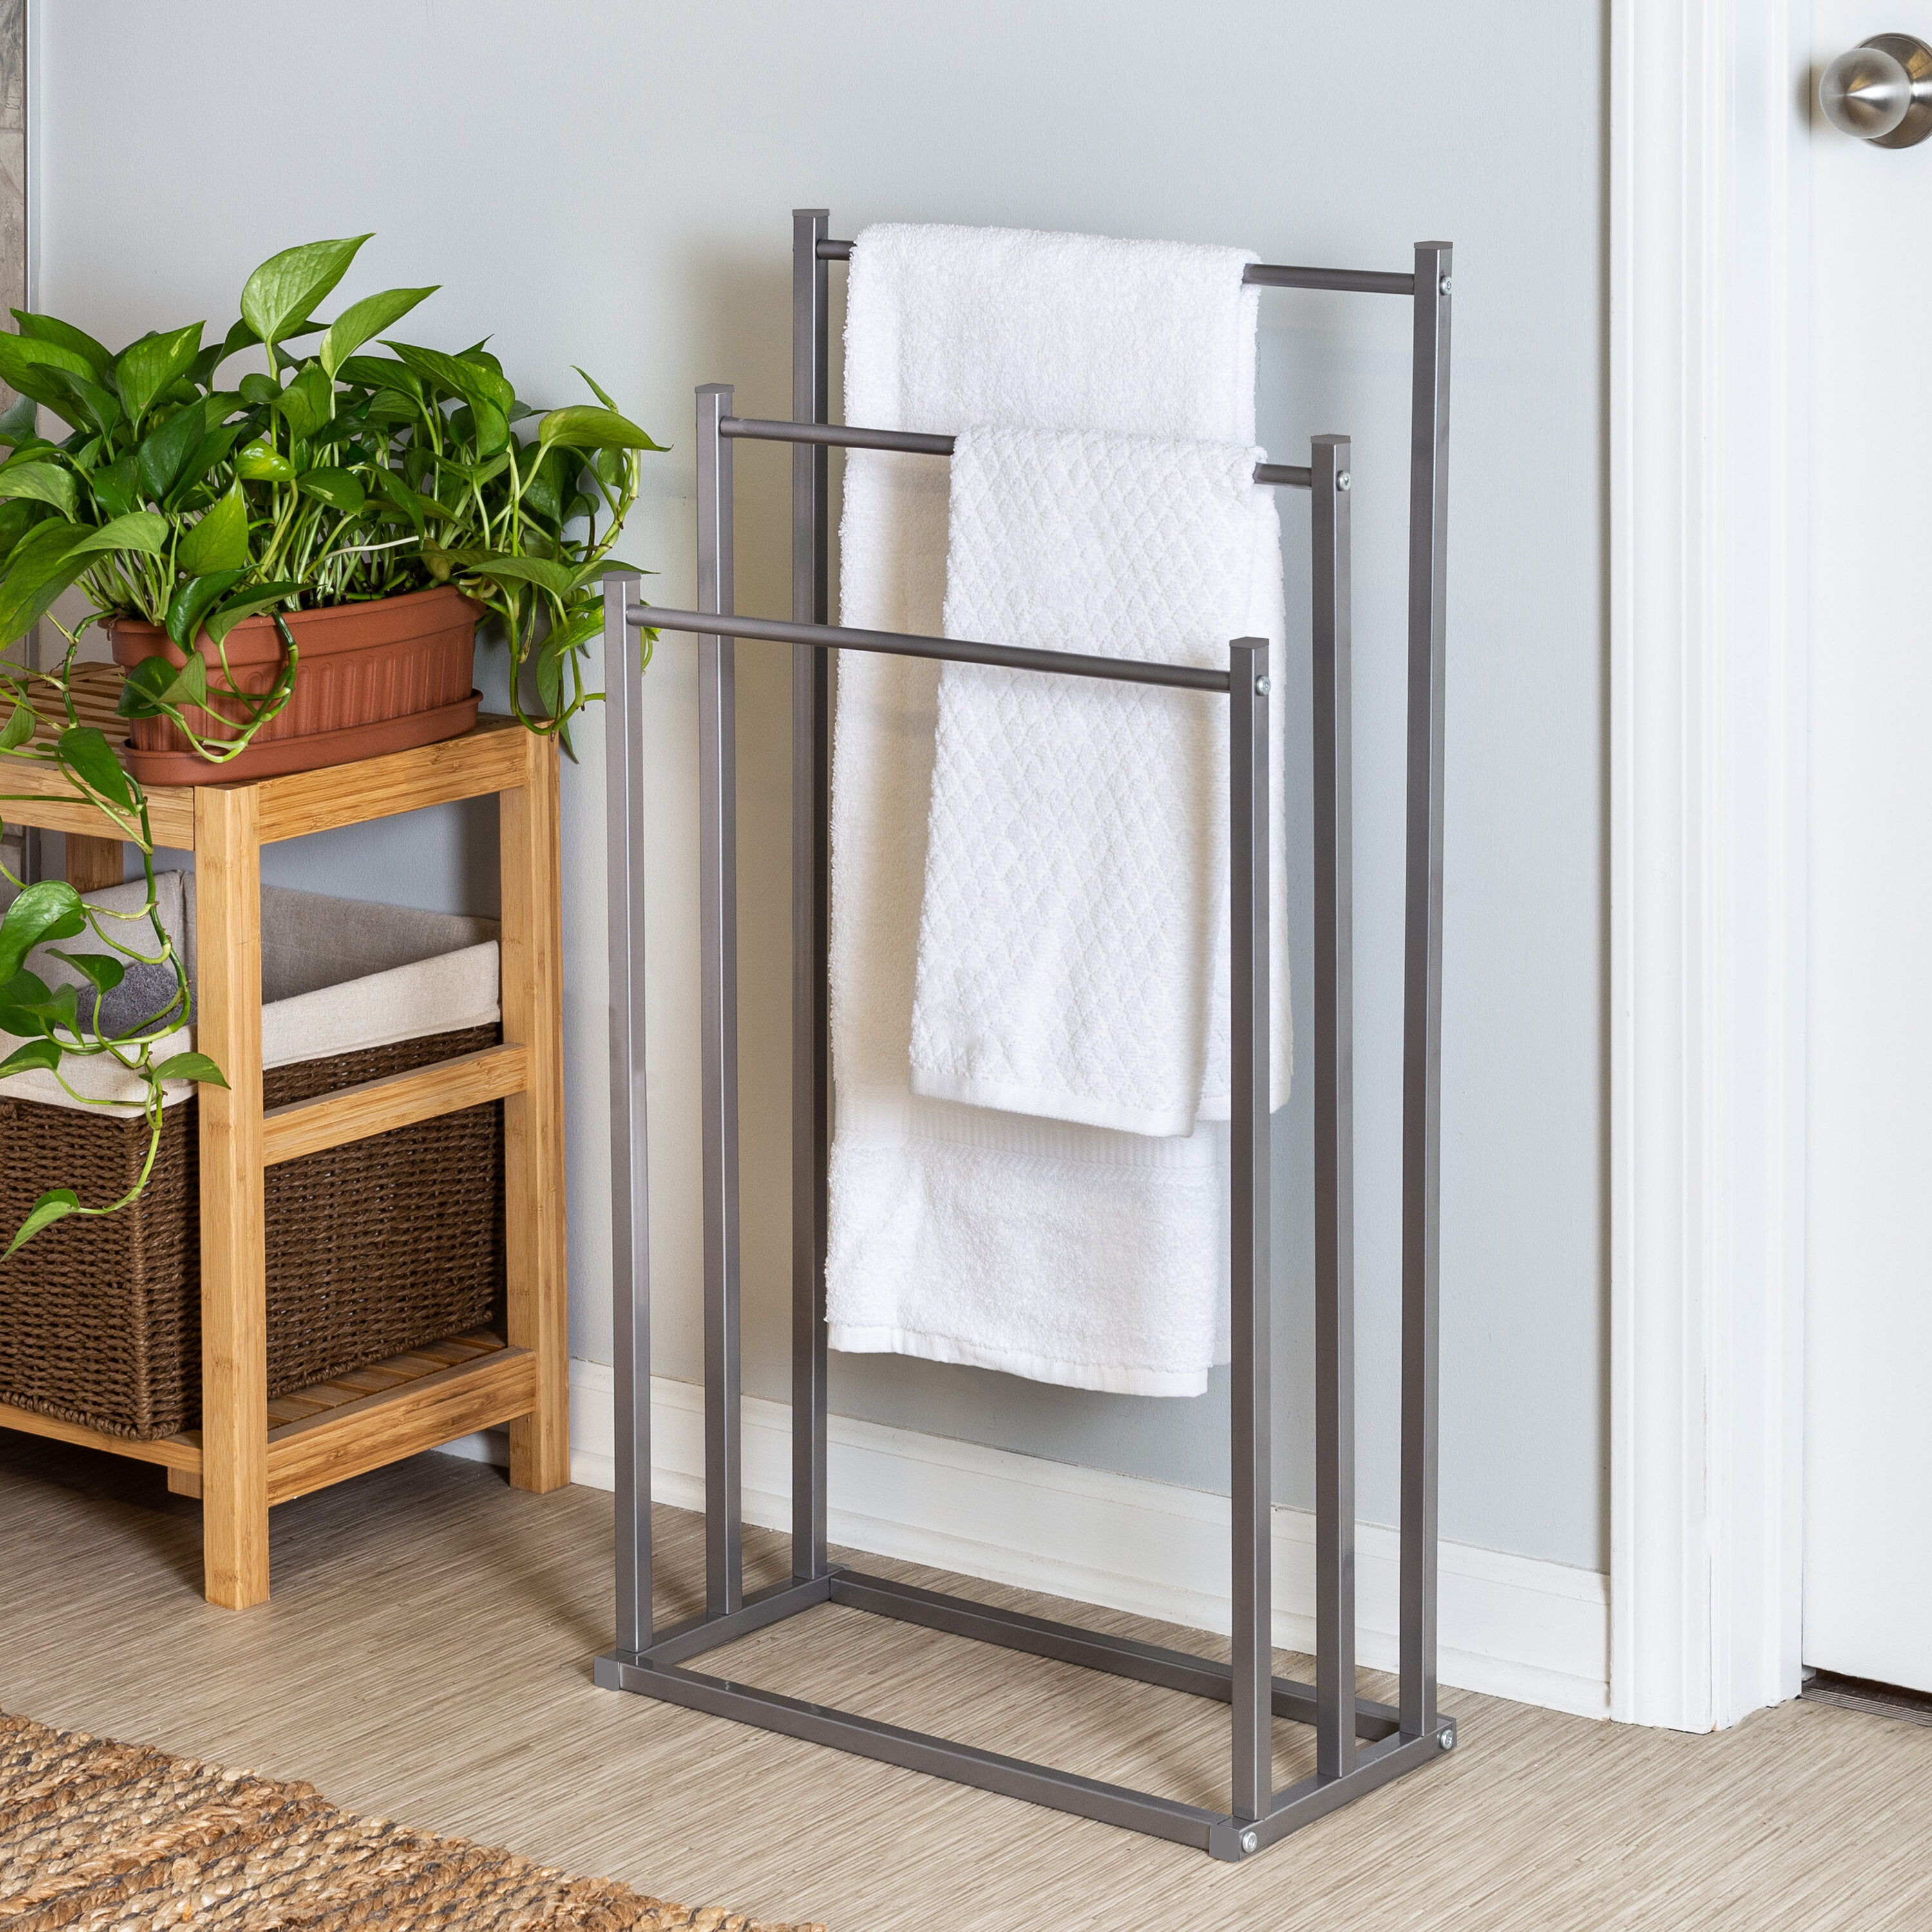 This Excellent Three Tier Towel Holder Would Be Perfect For Your Bathroom Made From High Quality Rubber Wood That Makes It Strong And Long Lasting